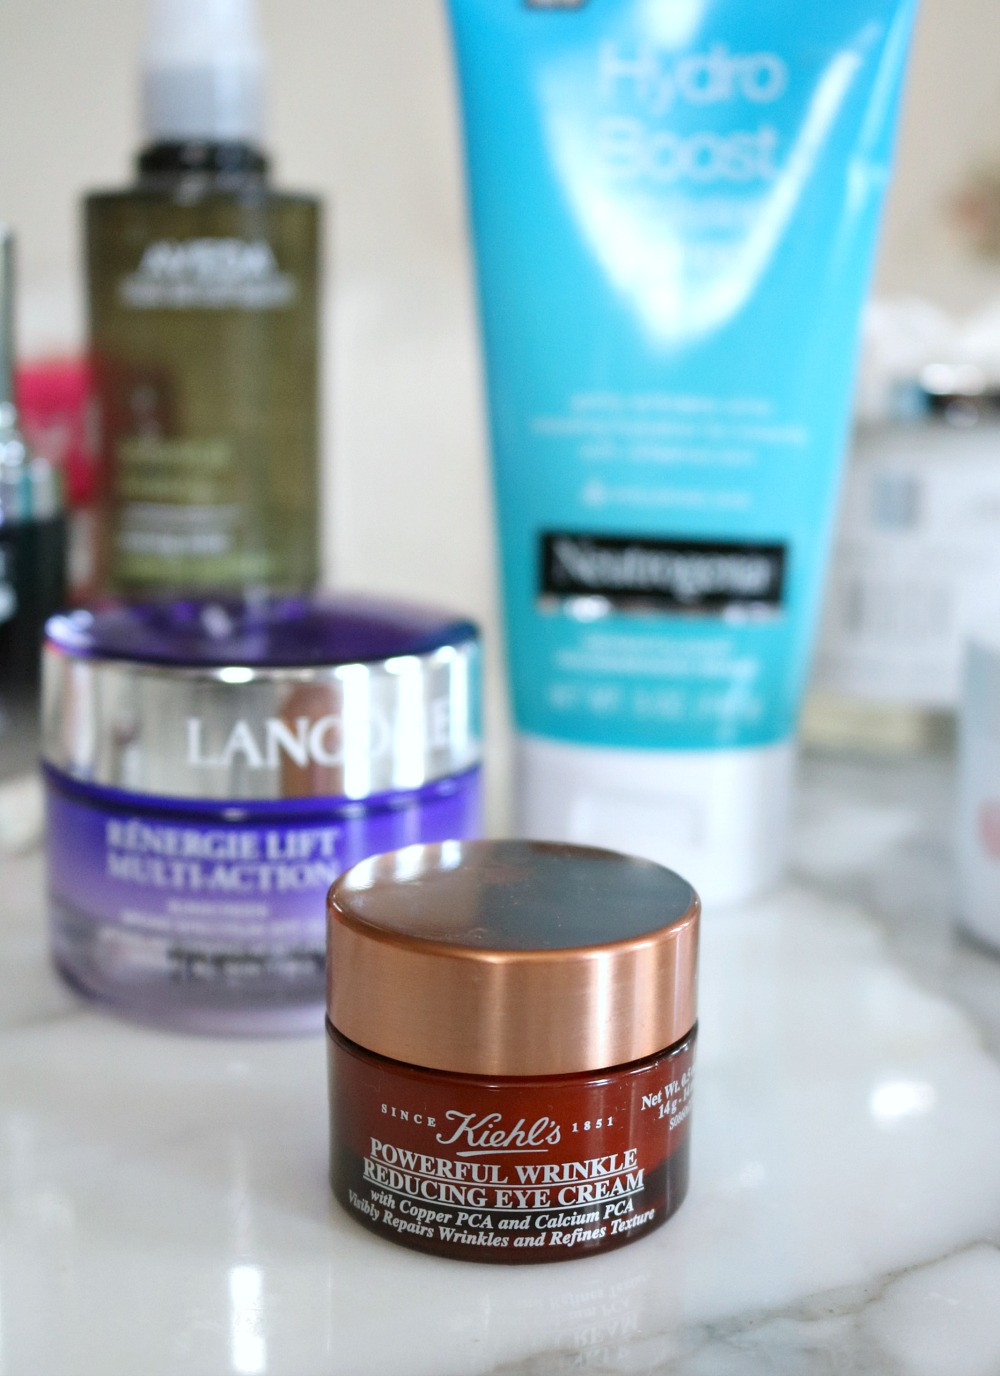 Best Skincare Products That I Cannot Get Enough Of I DreaminLace.com #Skincare #Lancome #BeautyBlog